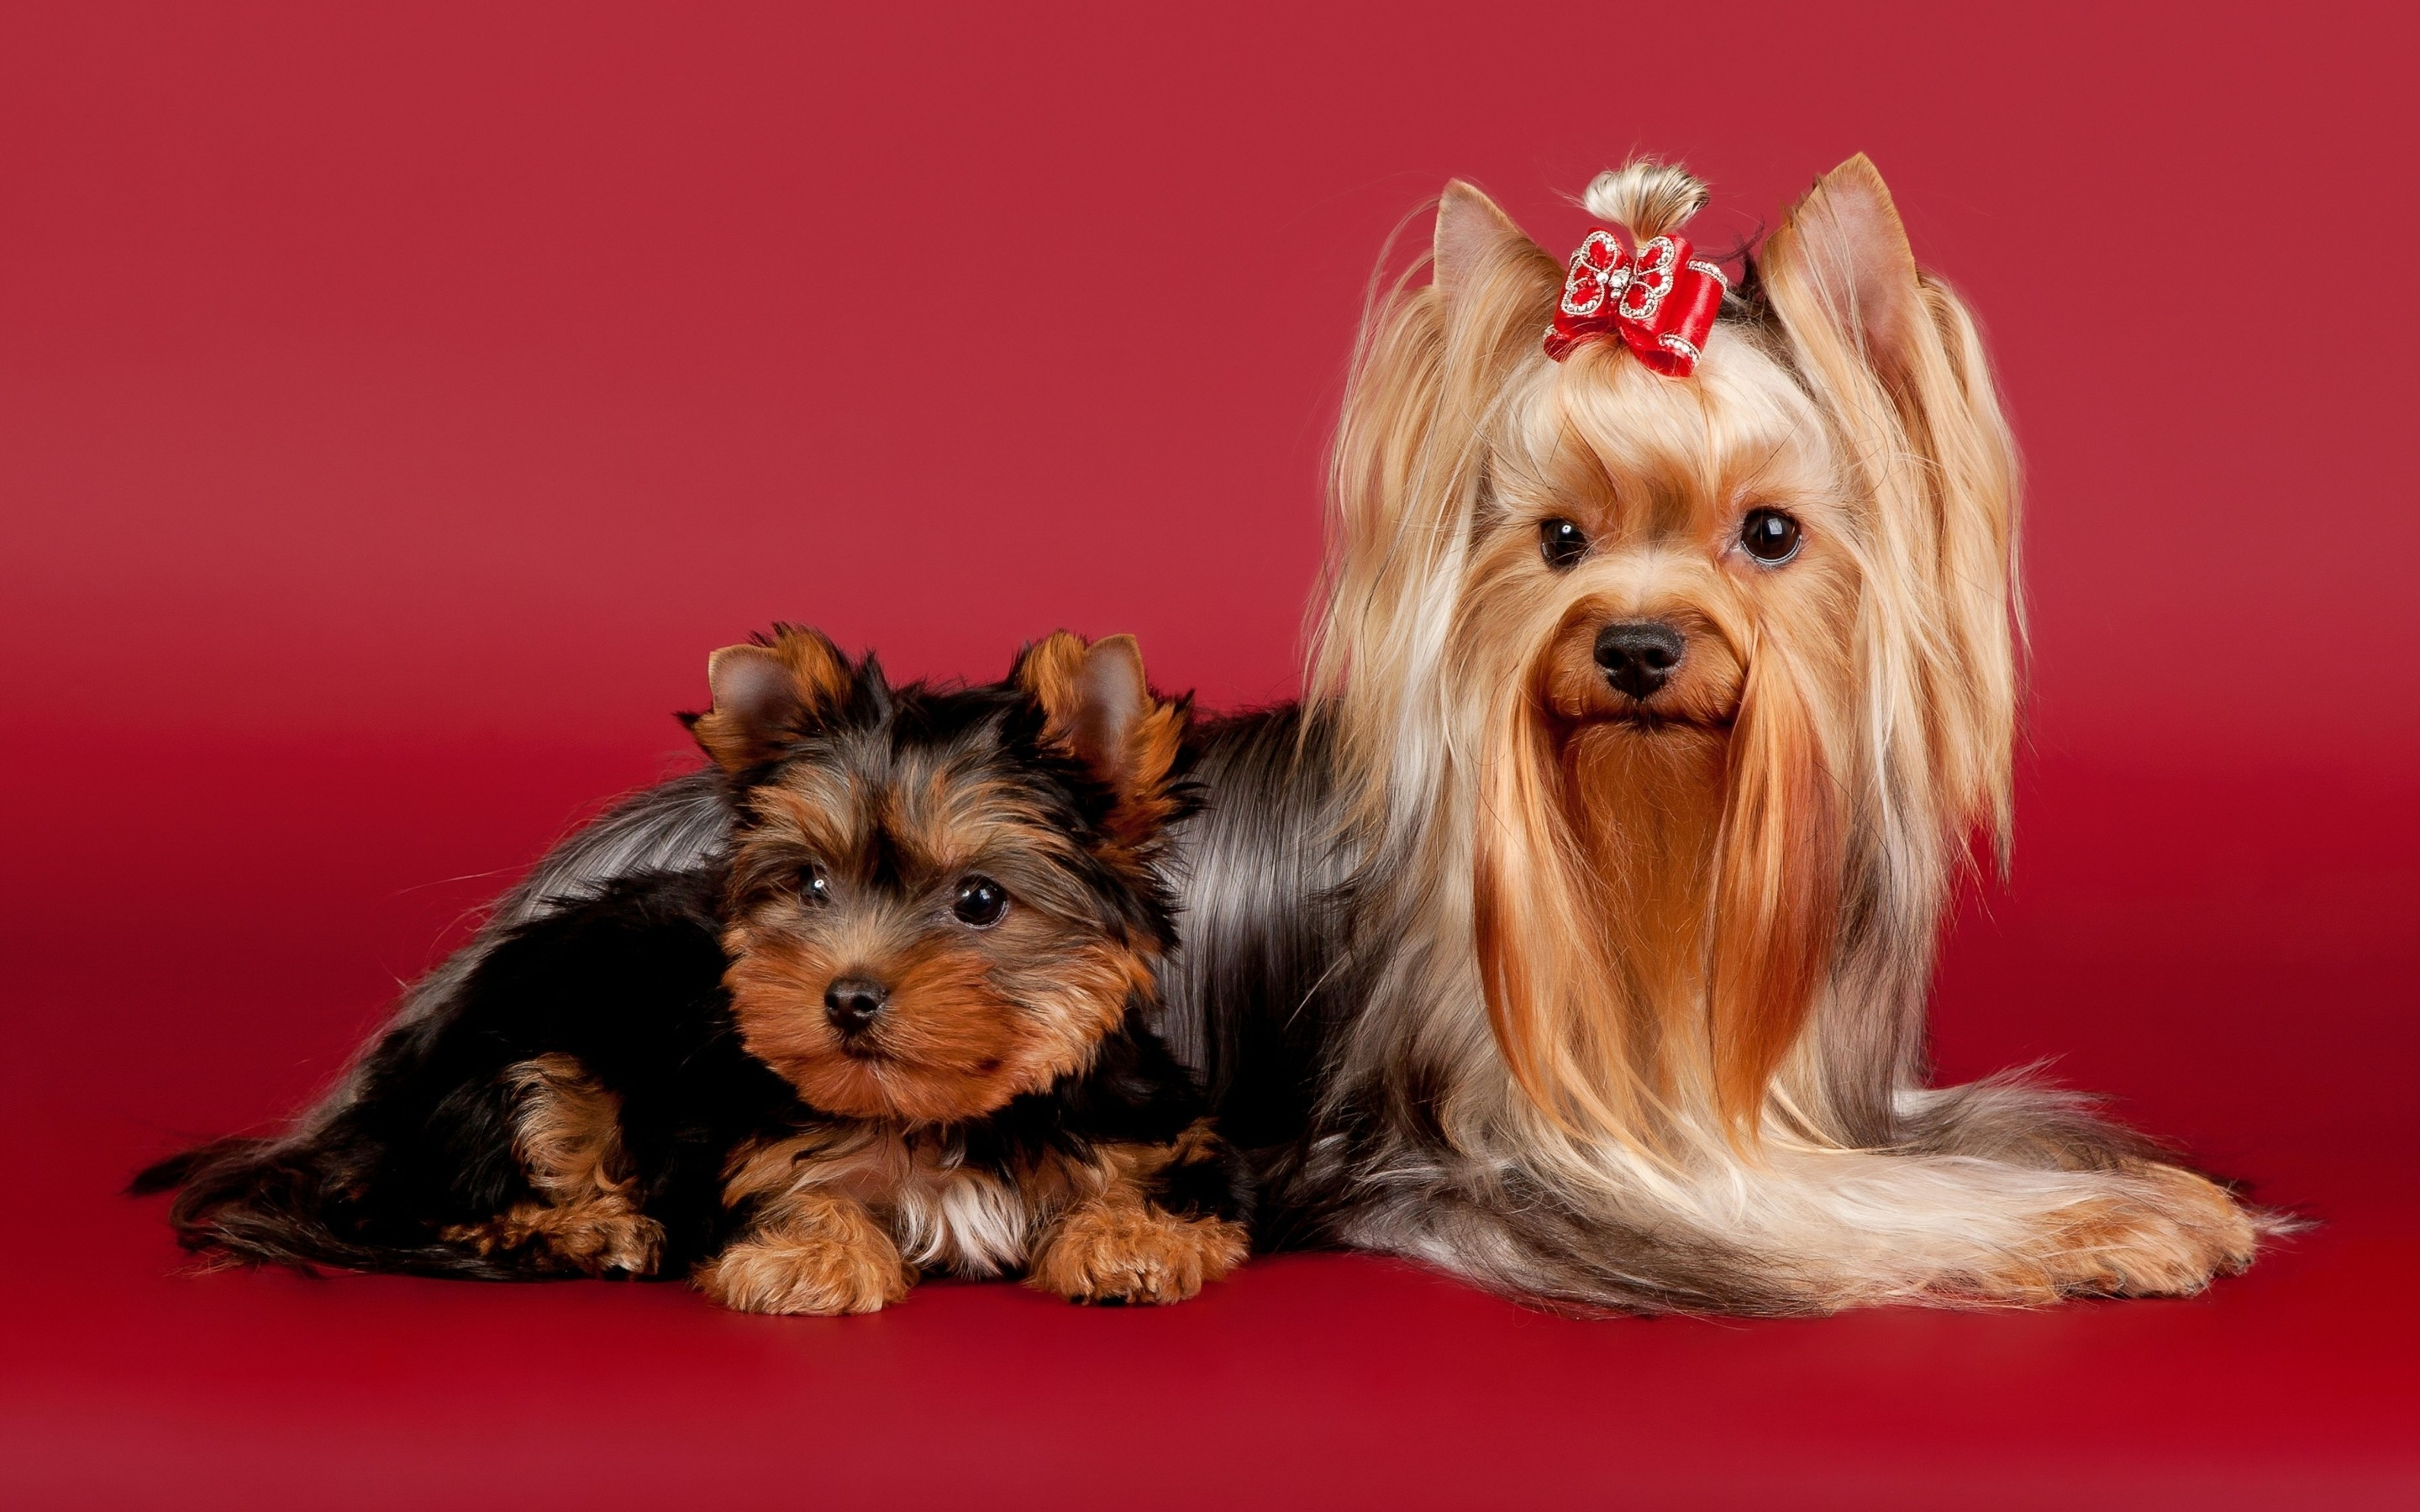 2 Cute Dogs for 2880 x 1800 Retina Display resolution